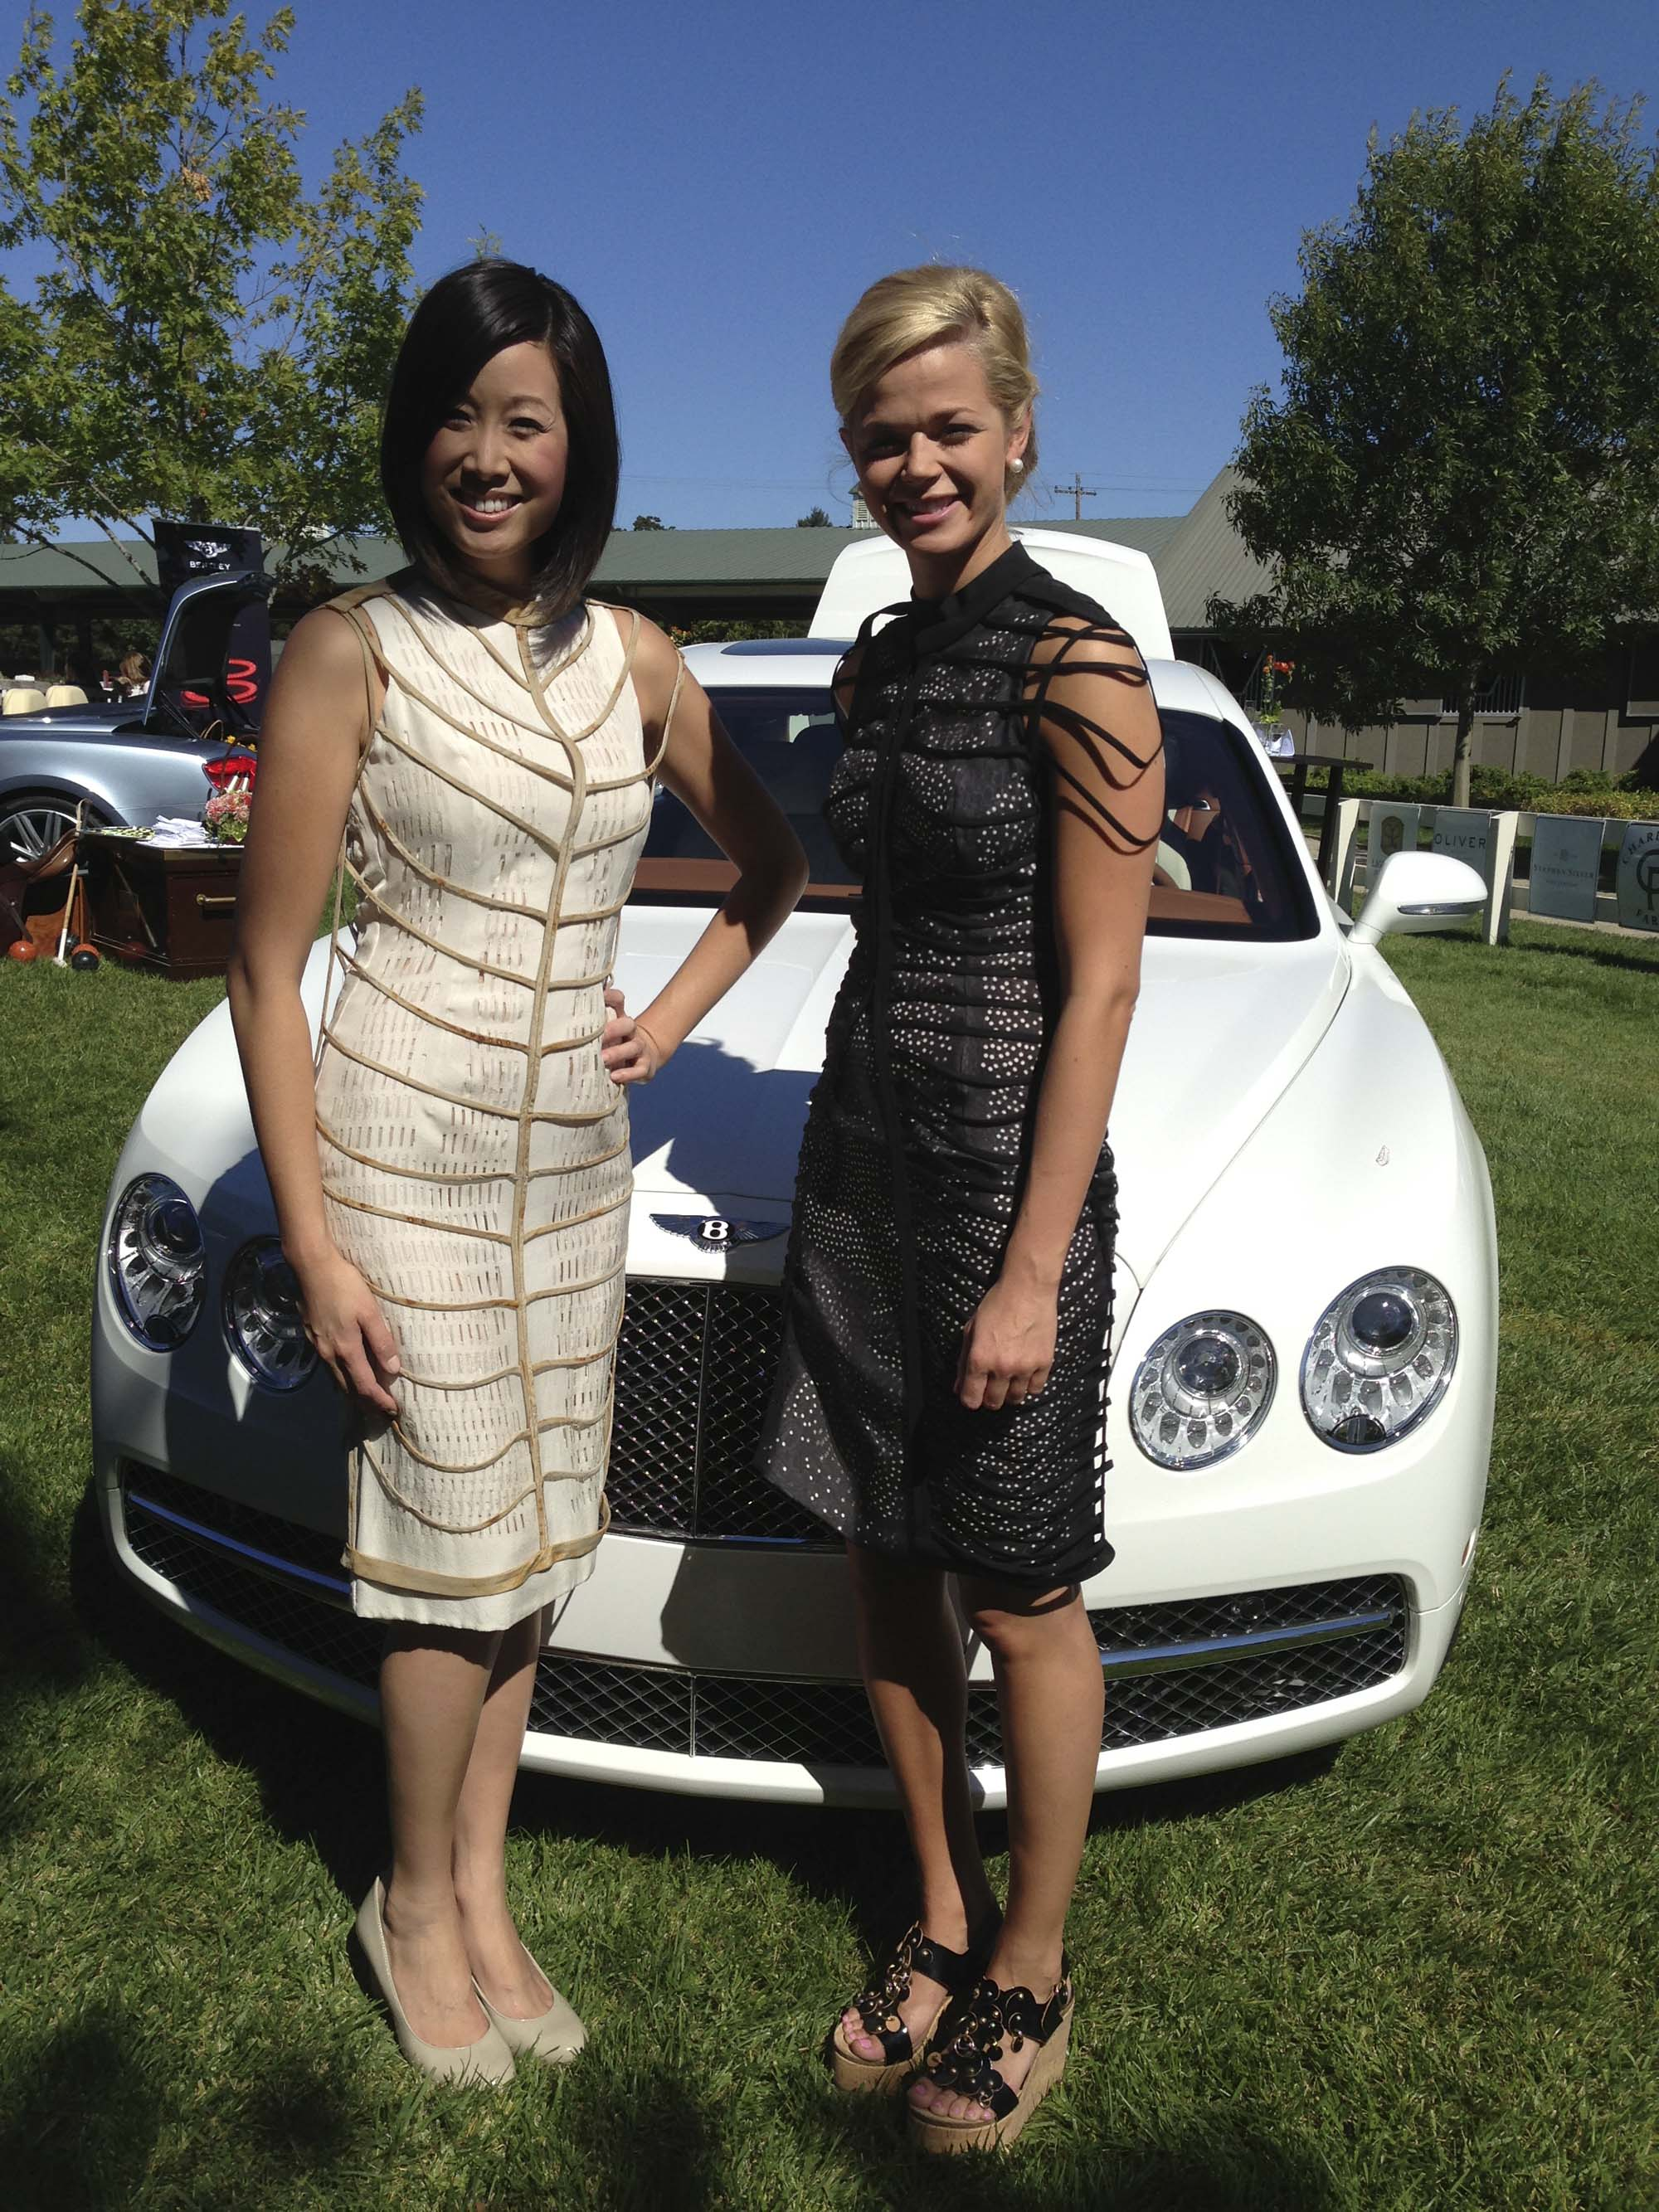 Four Seasons Hotel Silicon Valley & Bentley Motors know how to host a party.